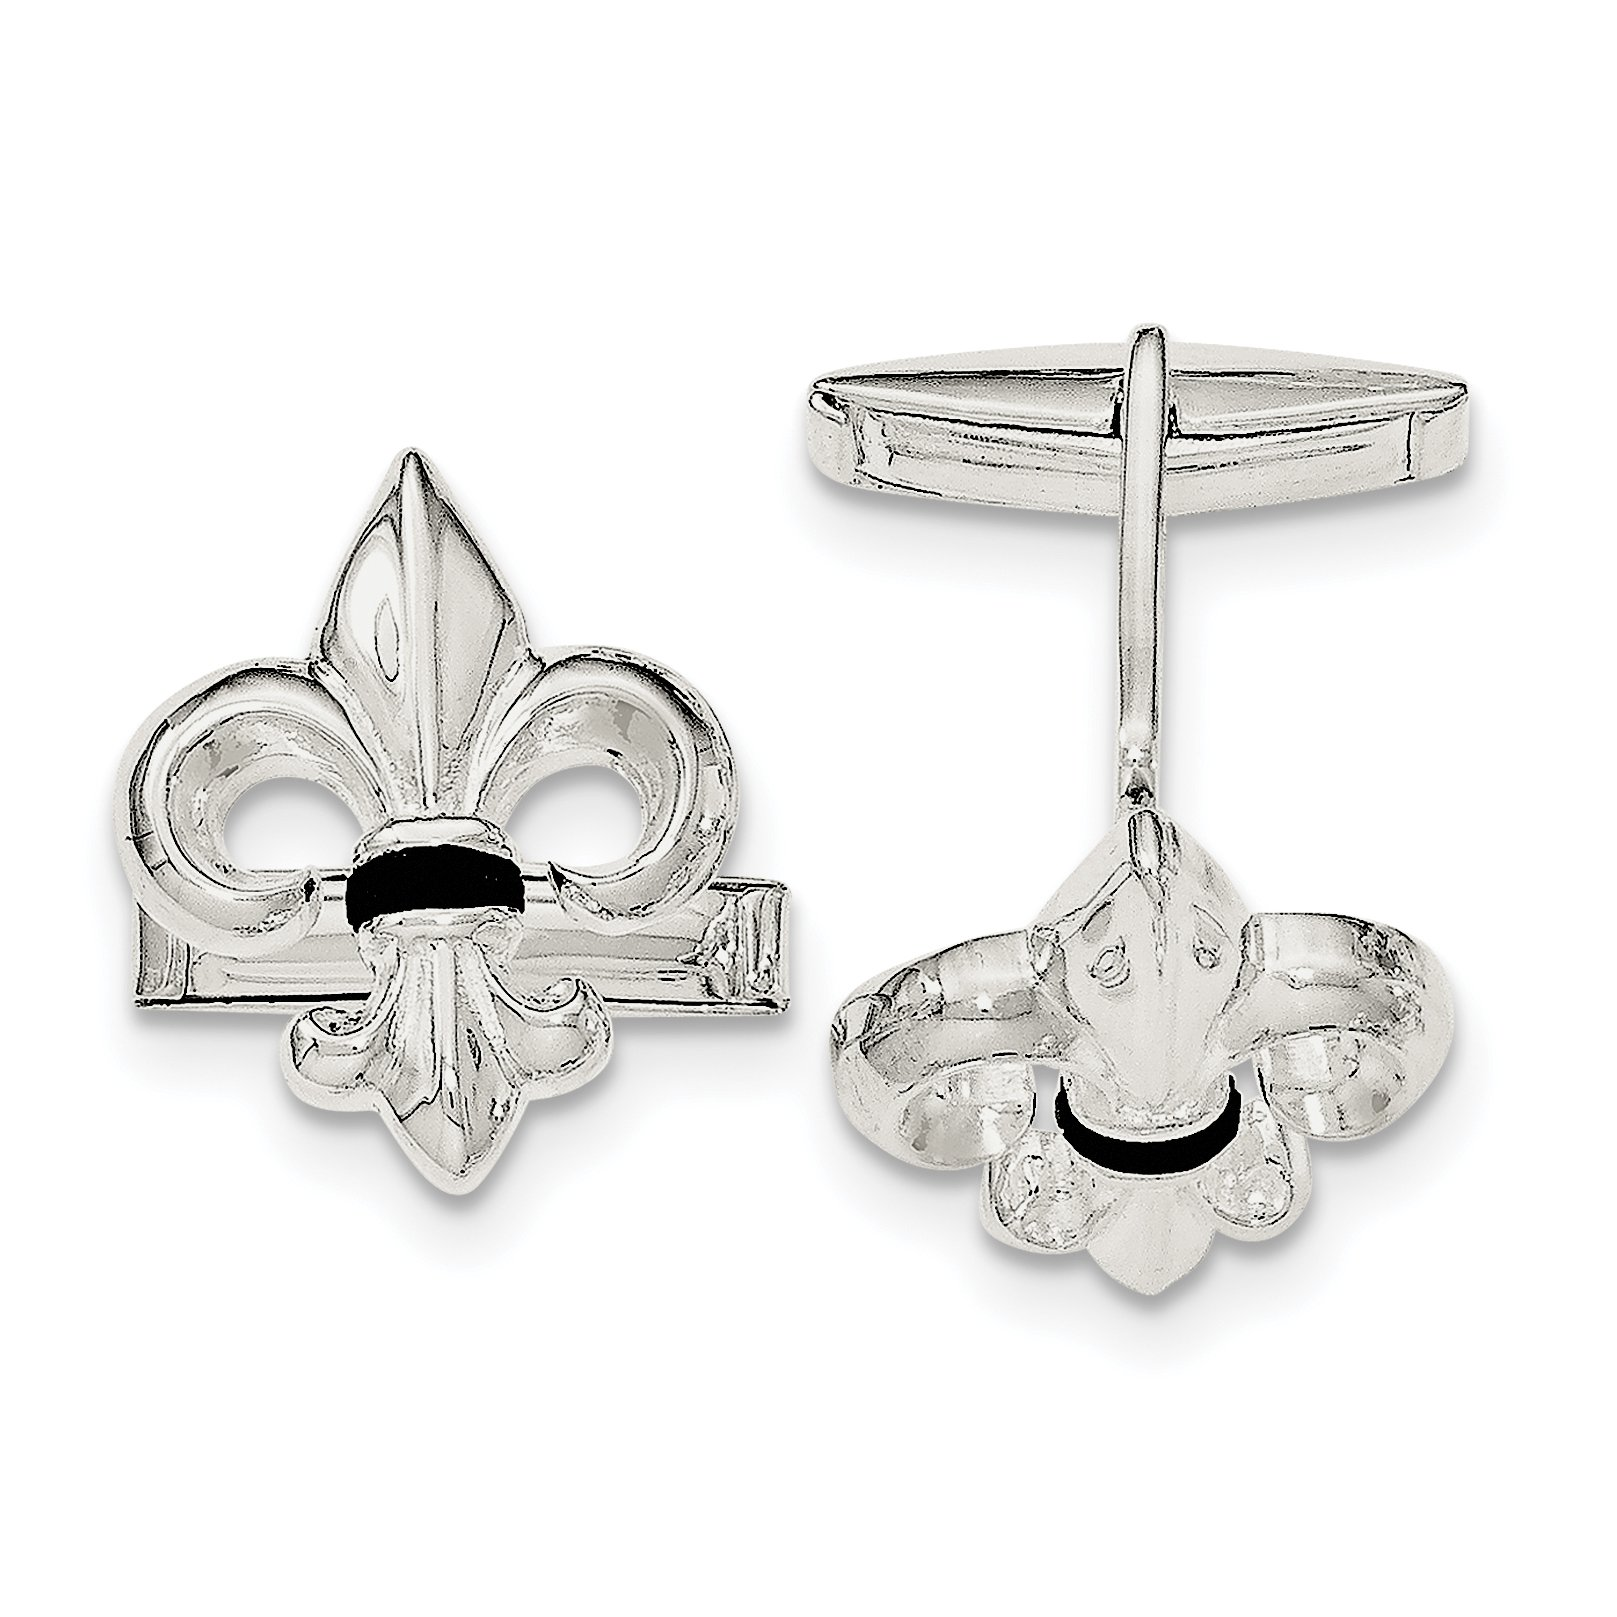 ICE CARATS 925 Sterling Silver Fleur De Lis Black Onyx Cuff Links Mens Cufflinks Link Fine Jewelry Dad Mens Gift Set